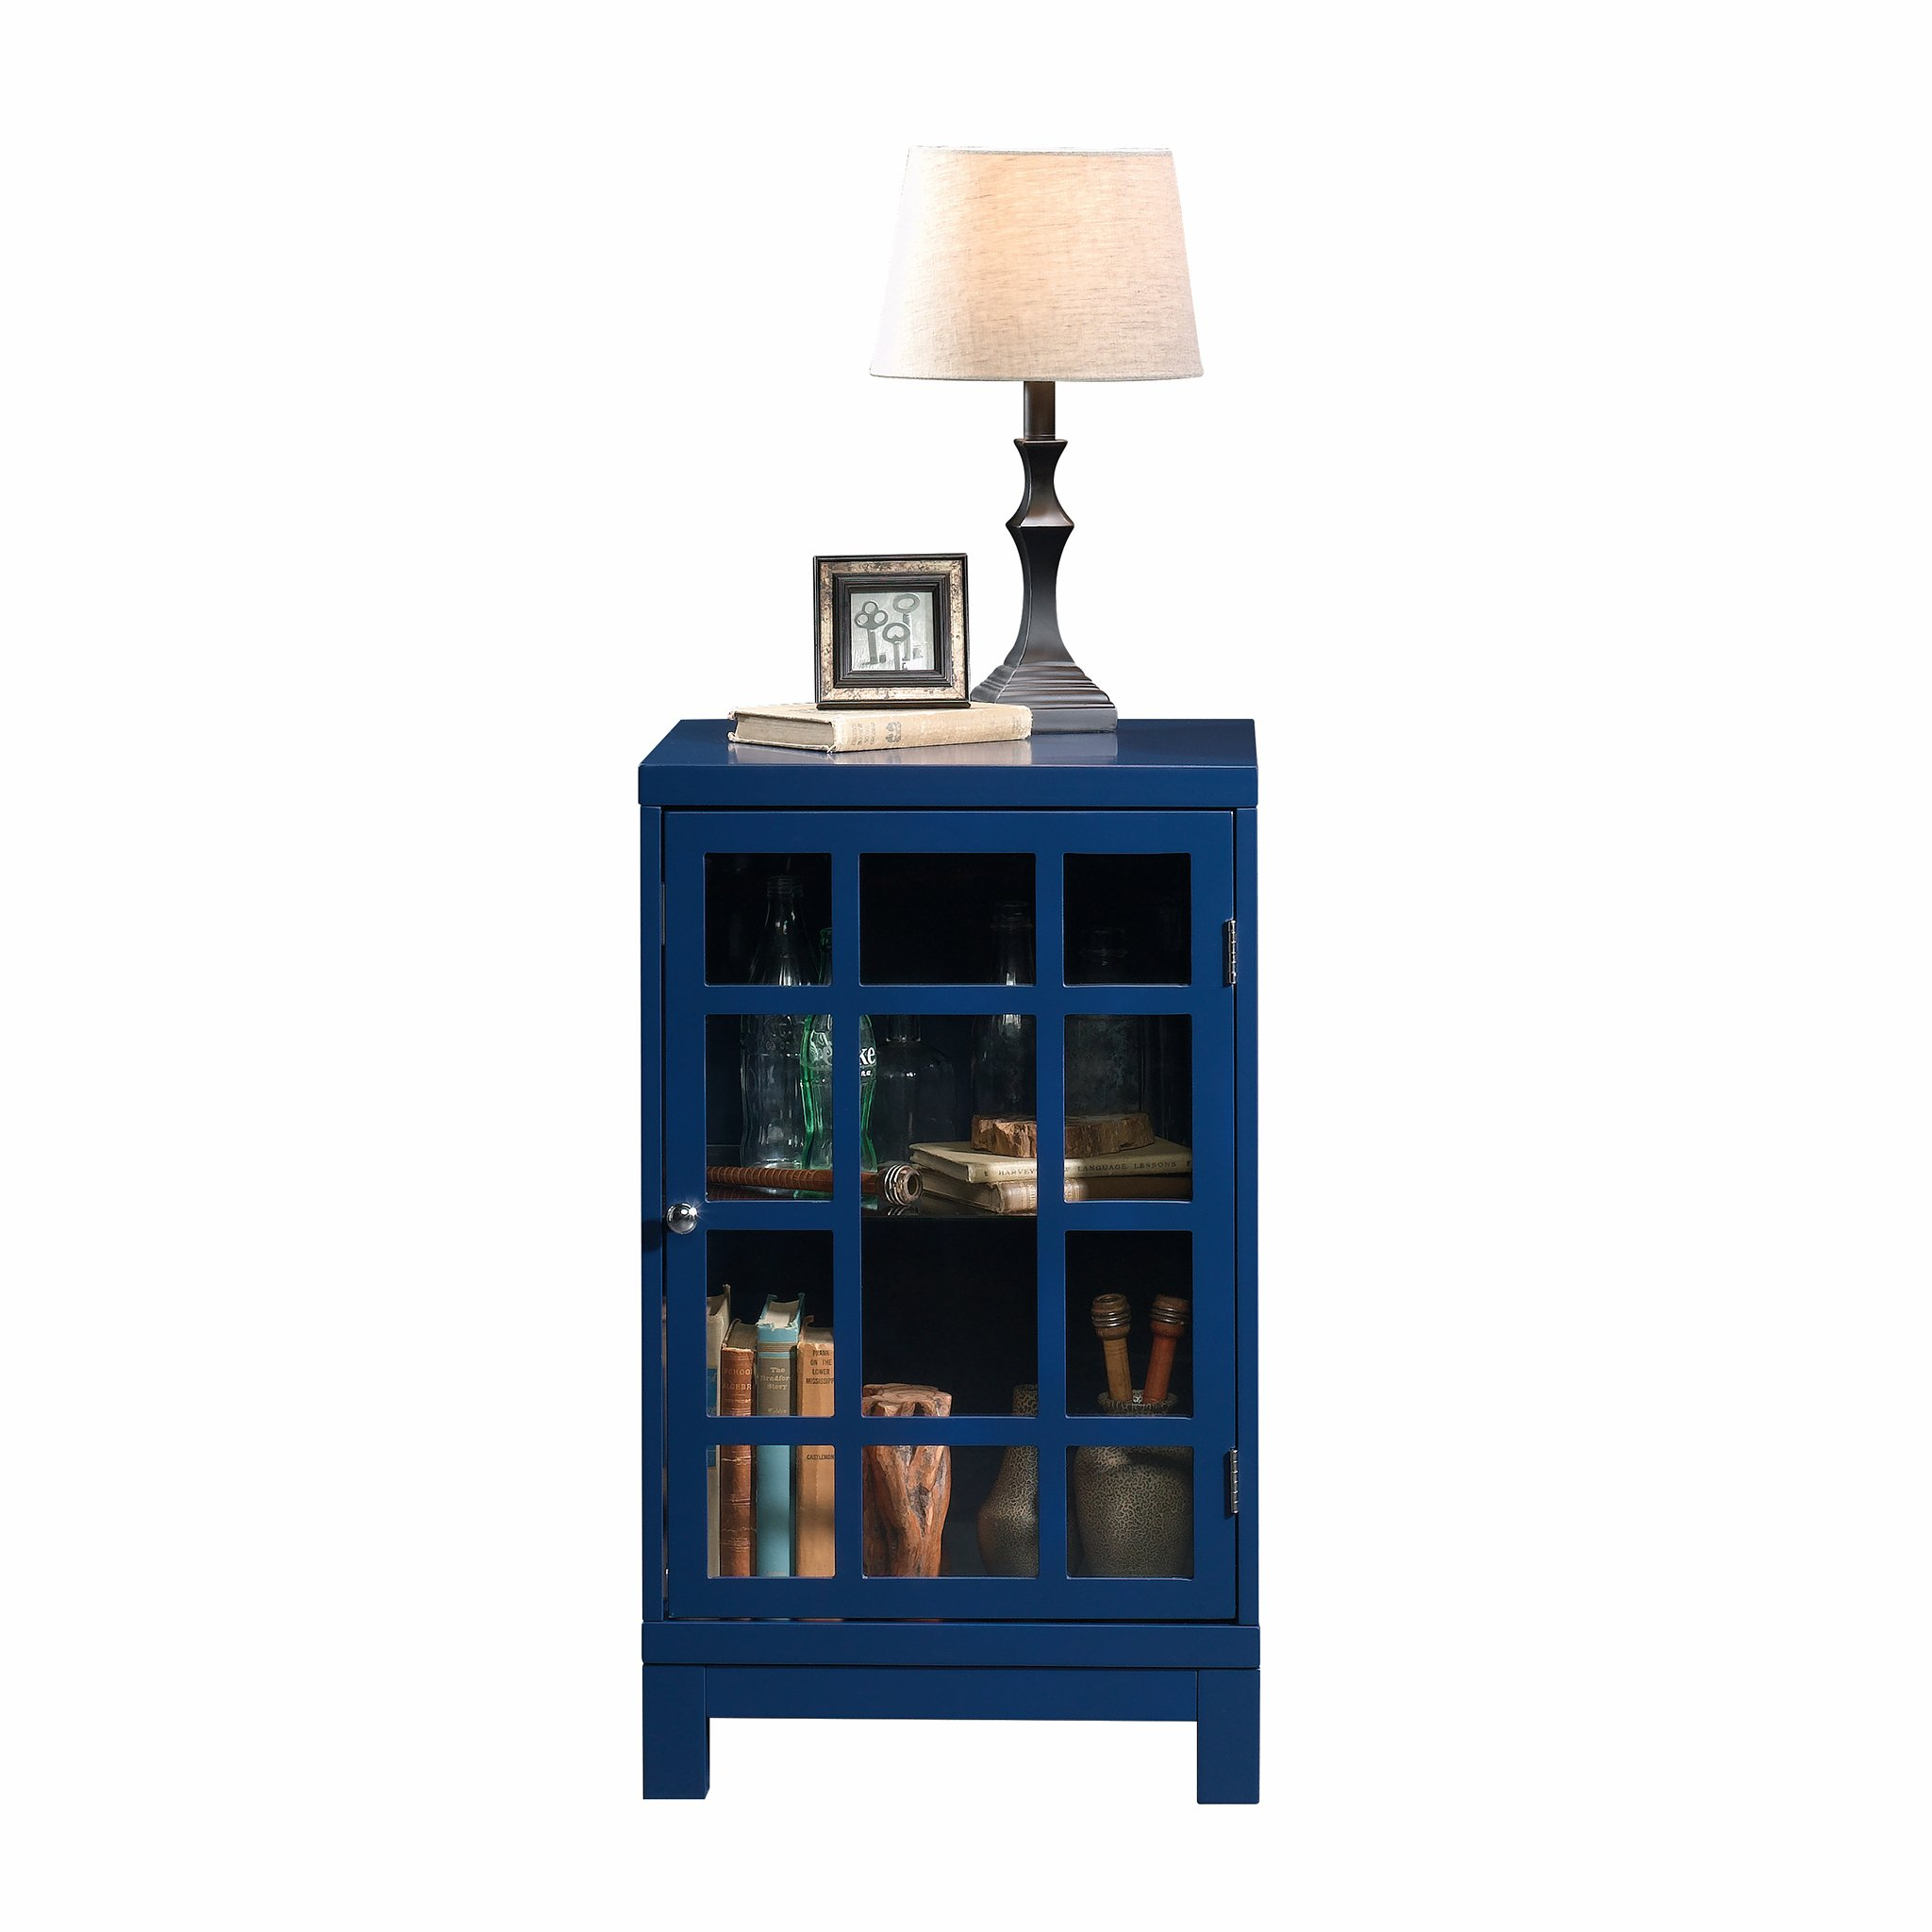 Sauder 420140 Carson Forge Display Cabinet, L: 17.91'' x W: 15.75'' x H: 27.56'', Indigo Blue finish by Sauder